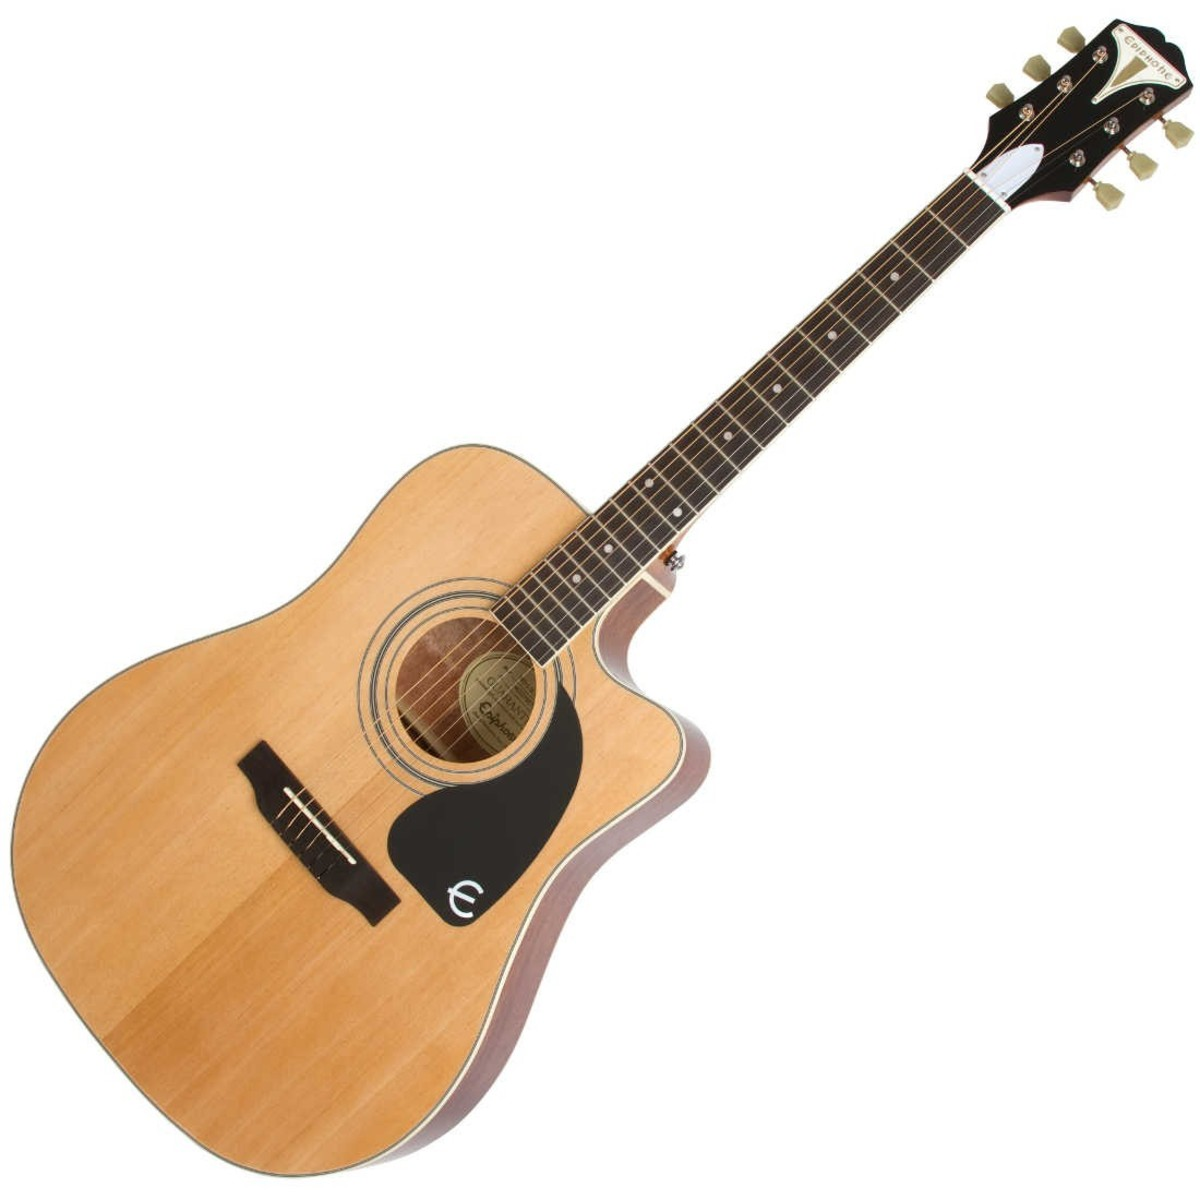 Epiphone Pro 1 Ultra : epiphone pro 1 ultra electro acoustic guitar natural at ~ Russianpoet.info Haus und Dekorationen